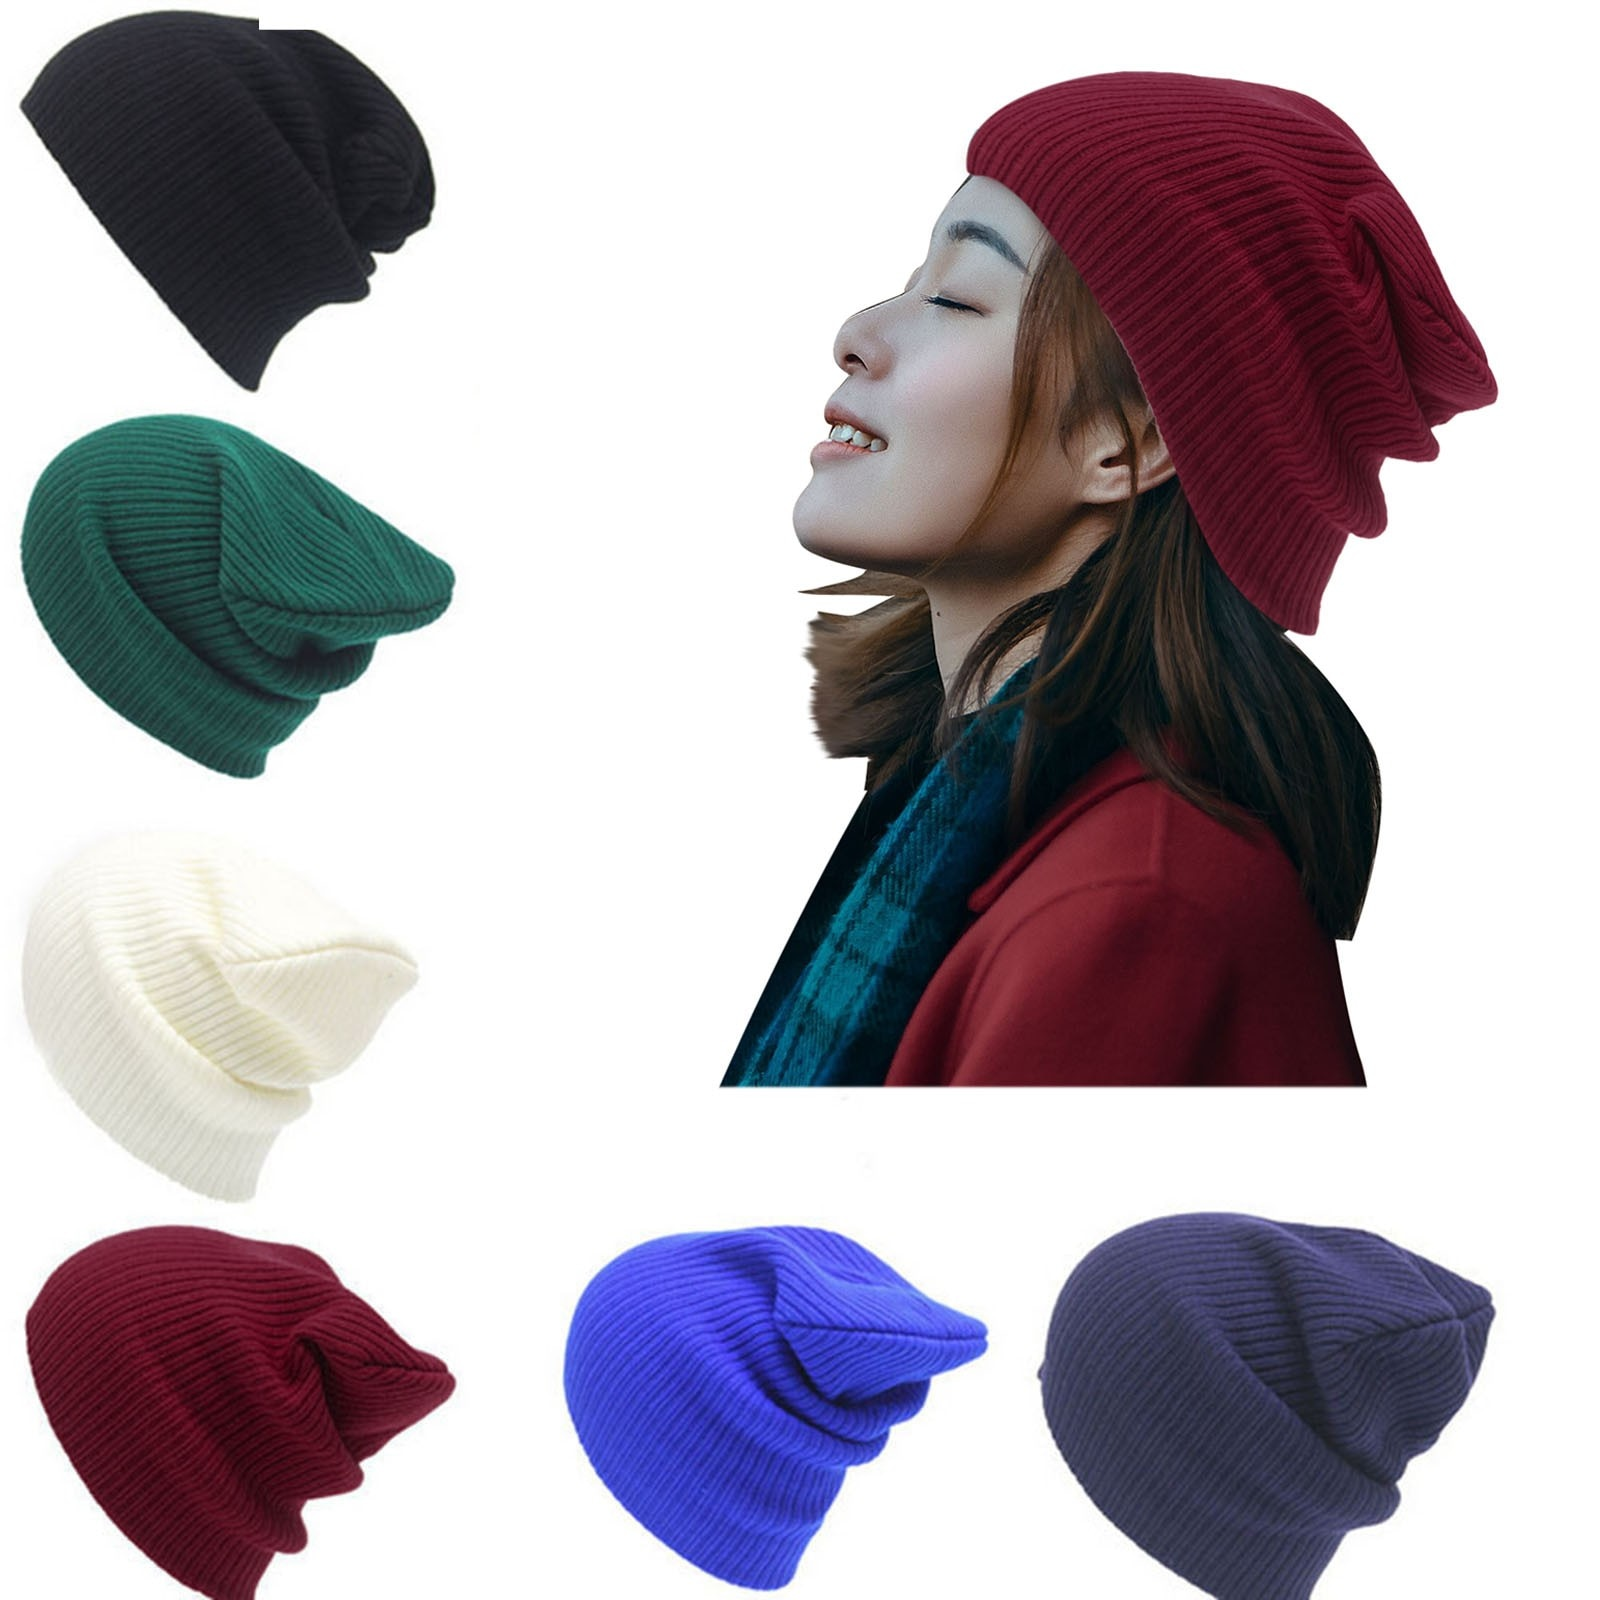 Winter Hat For Women Rabbit Cashmere Knitted Beanies Thick Warm Vogue Ladies Wool Angora Hat Female